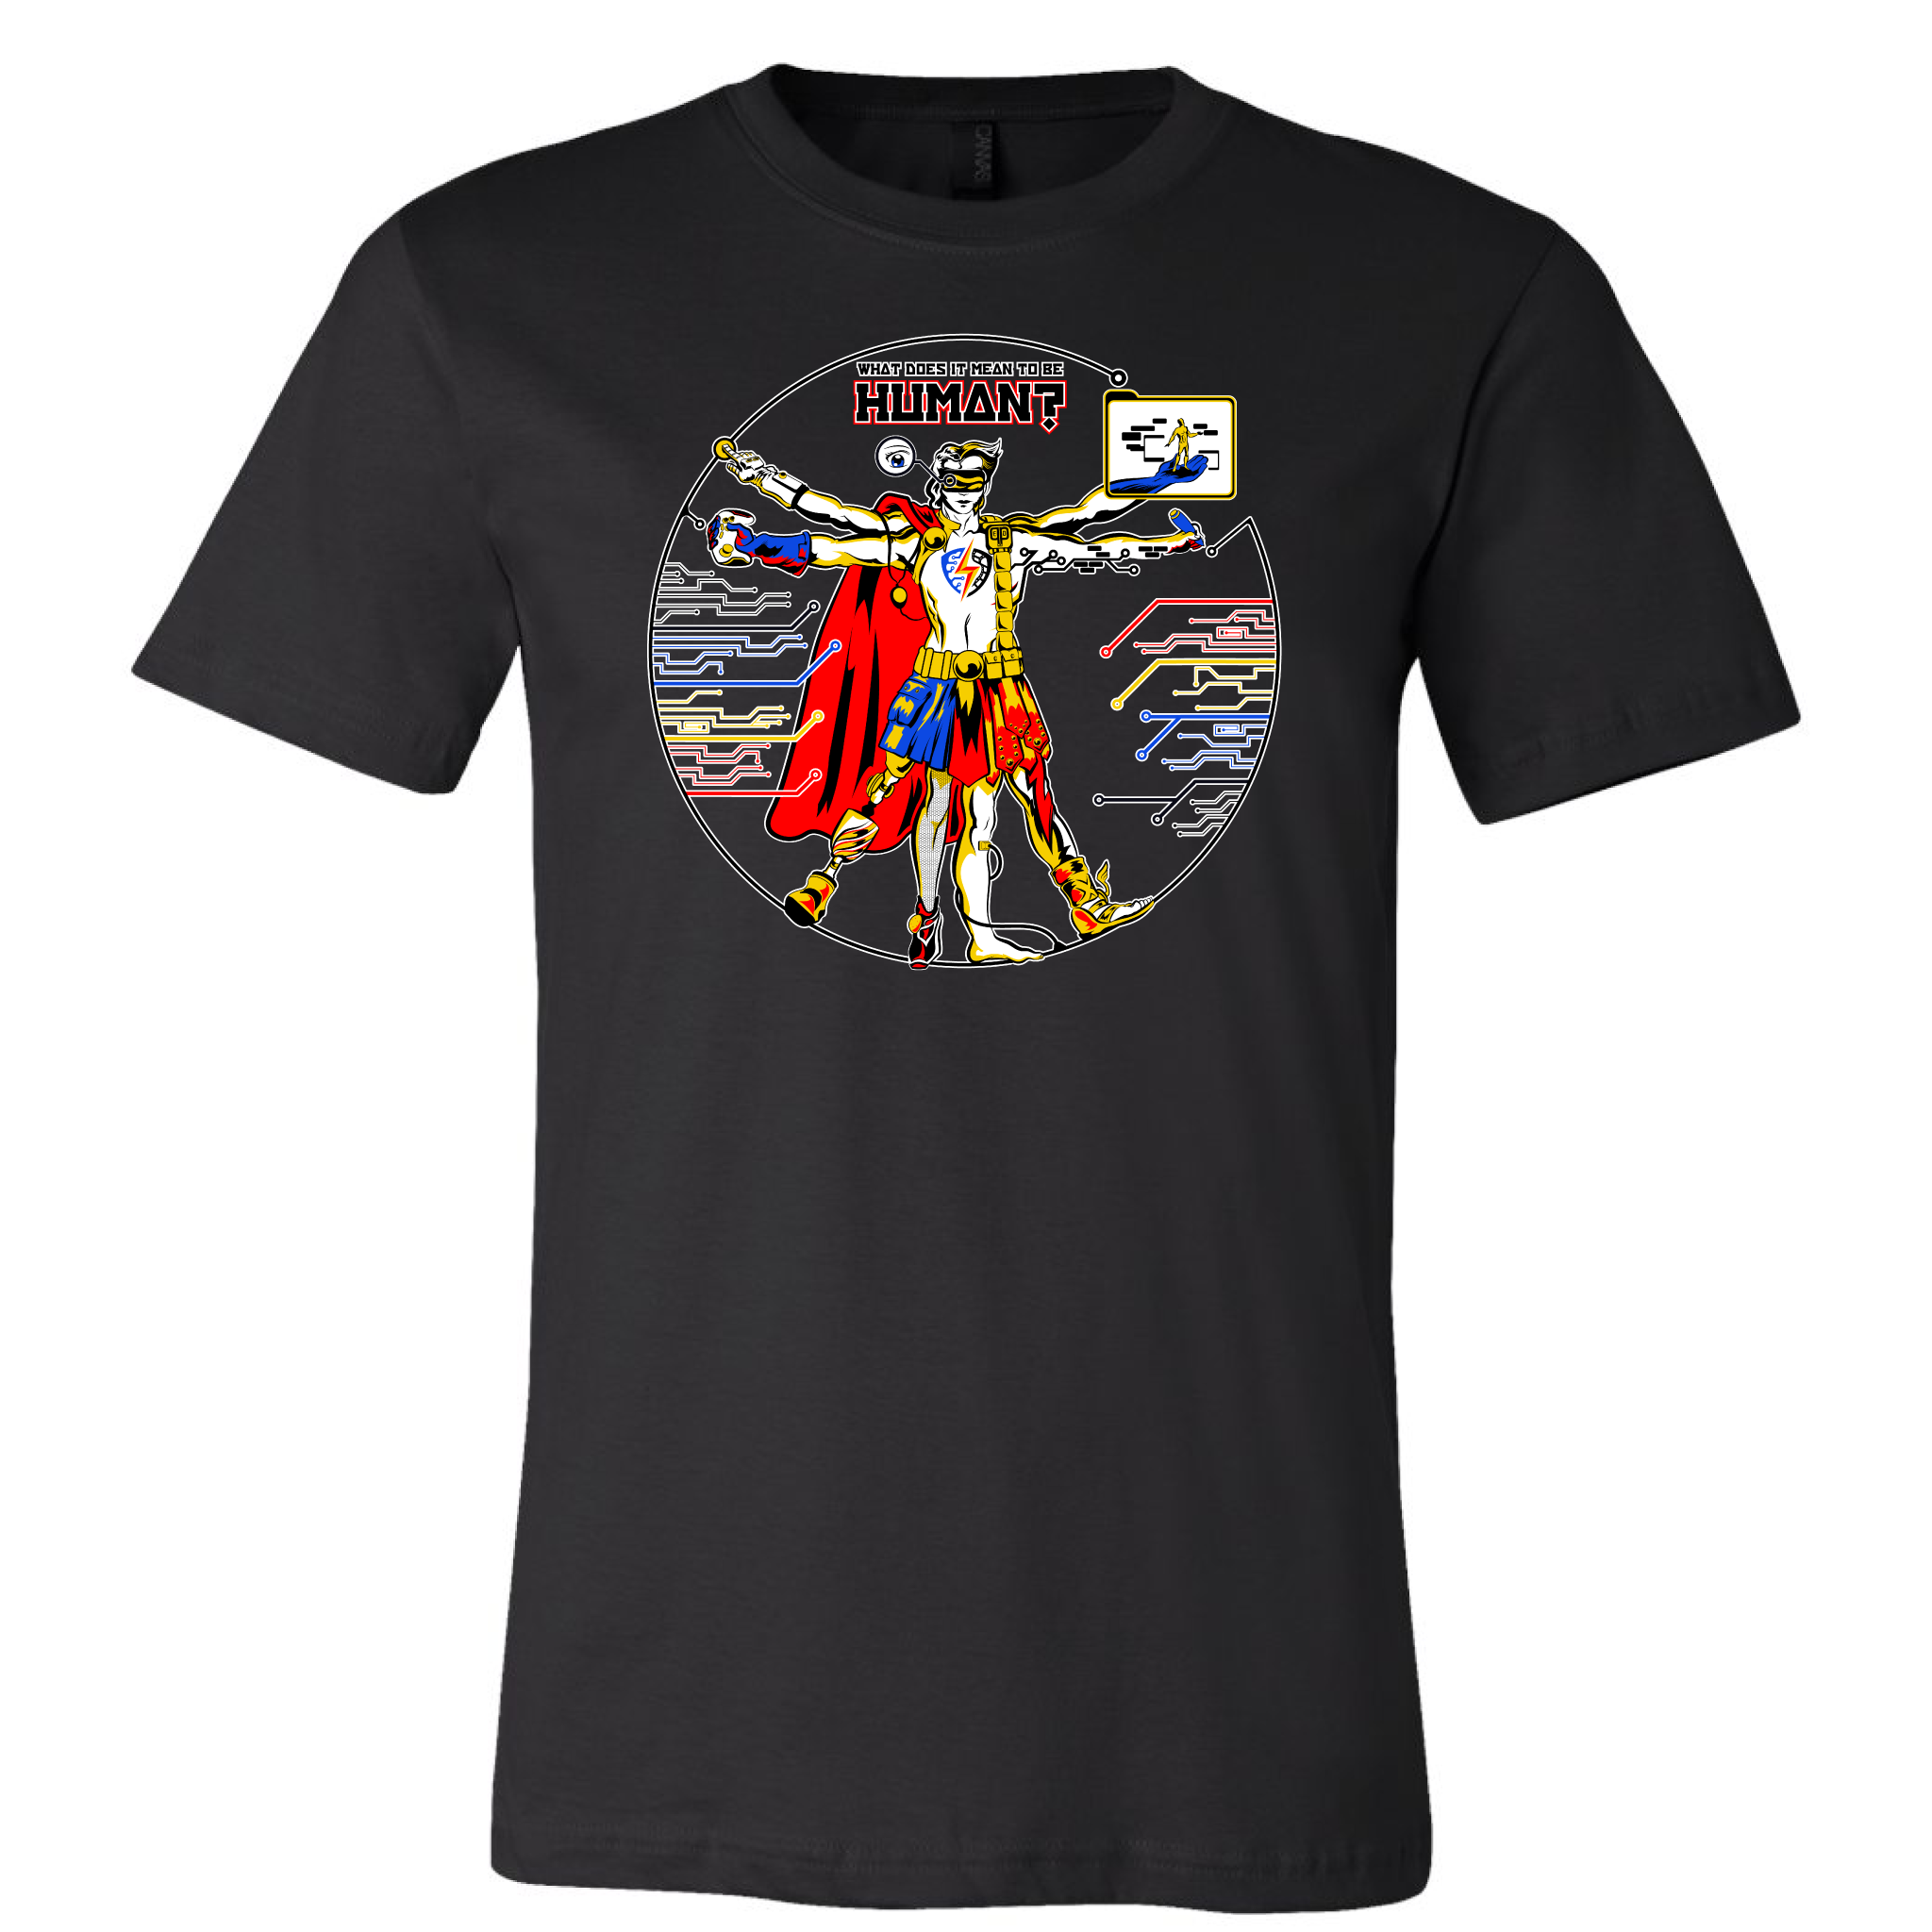 SVCC---NEWColors---Black-1-6-18-on-TEE.png